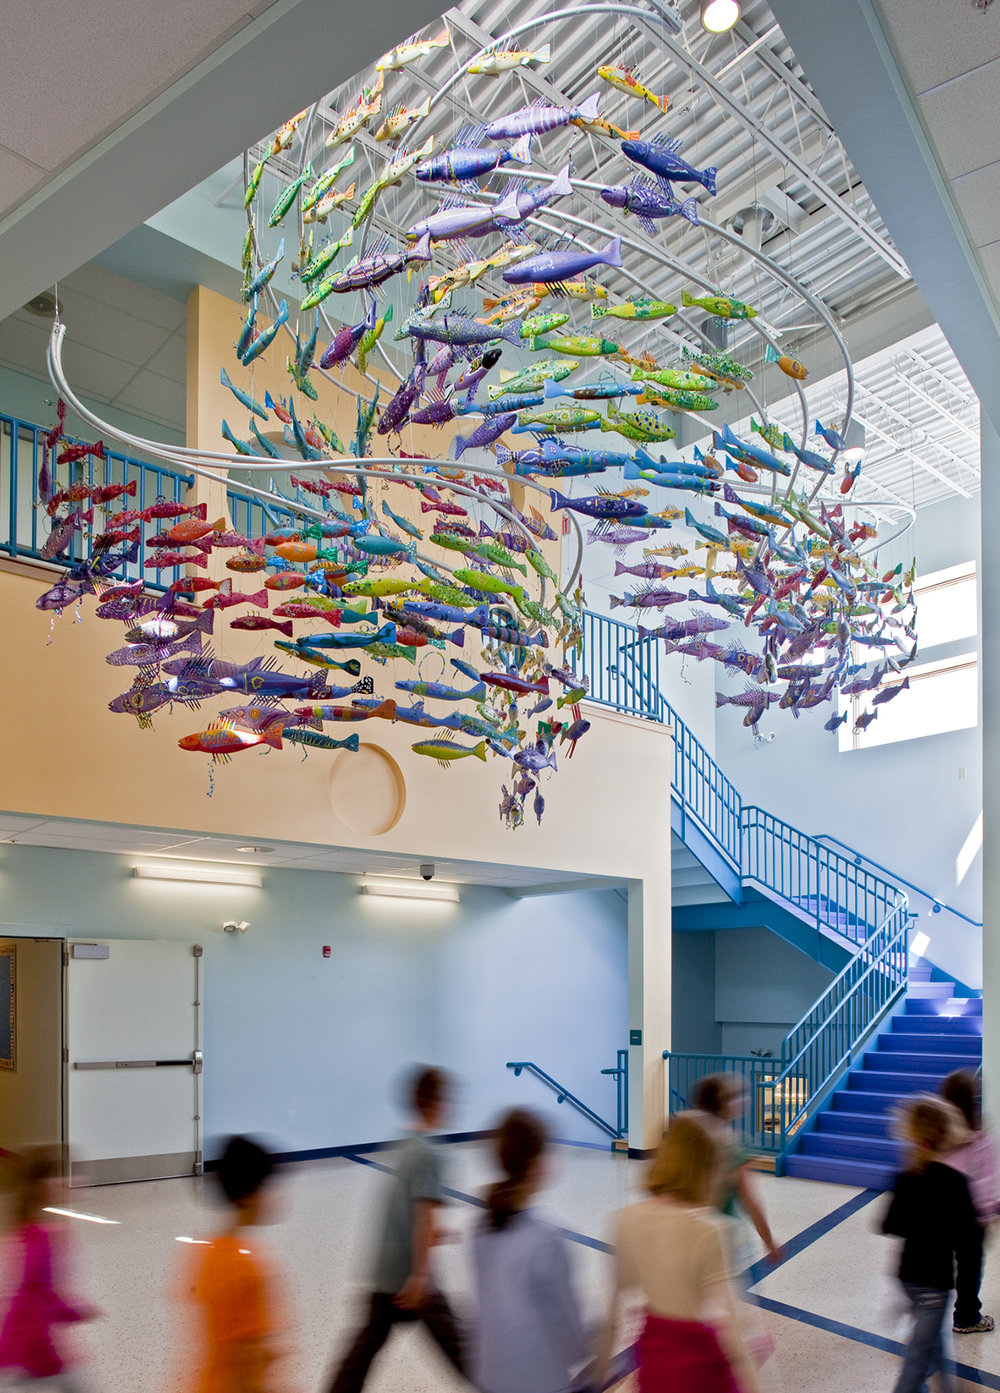 The lobby was designed around this FishES mobile, a project led by the Youth Arts organization in Camden. Every student in the school made a fish that swims overhead as you enter the building.